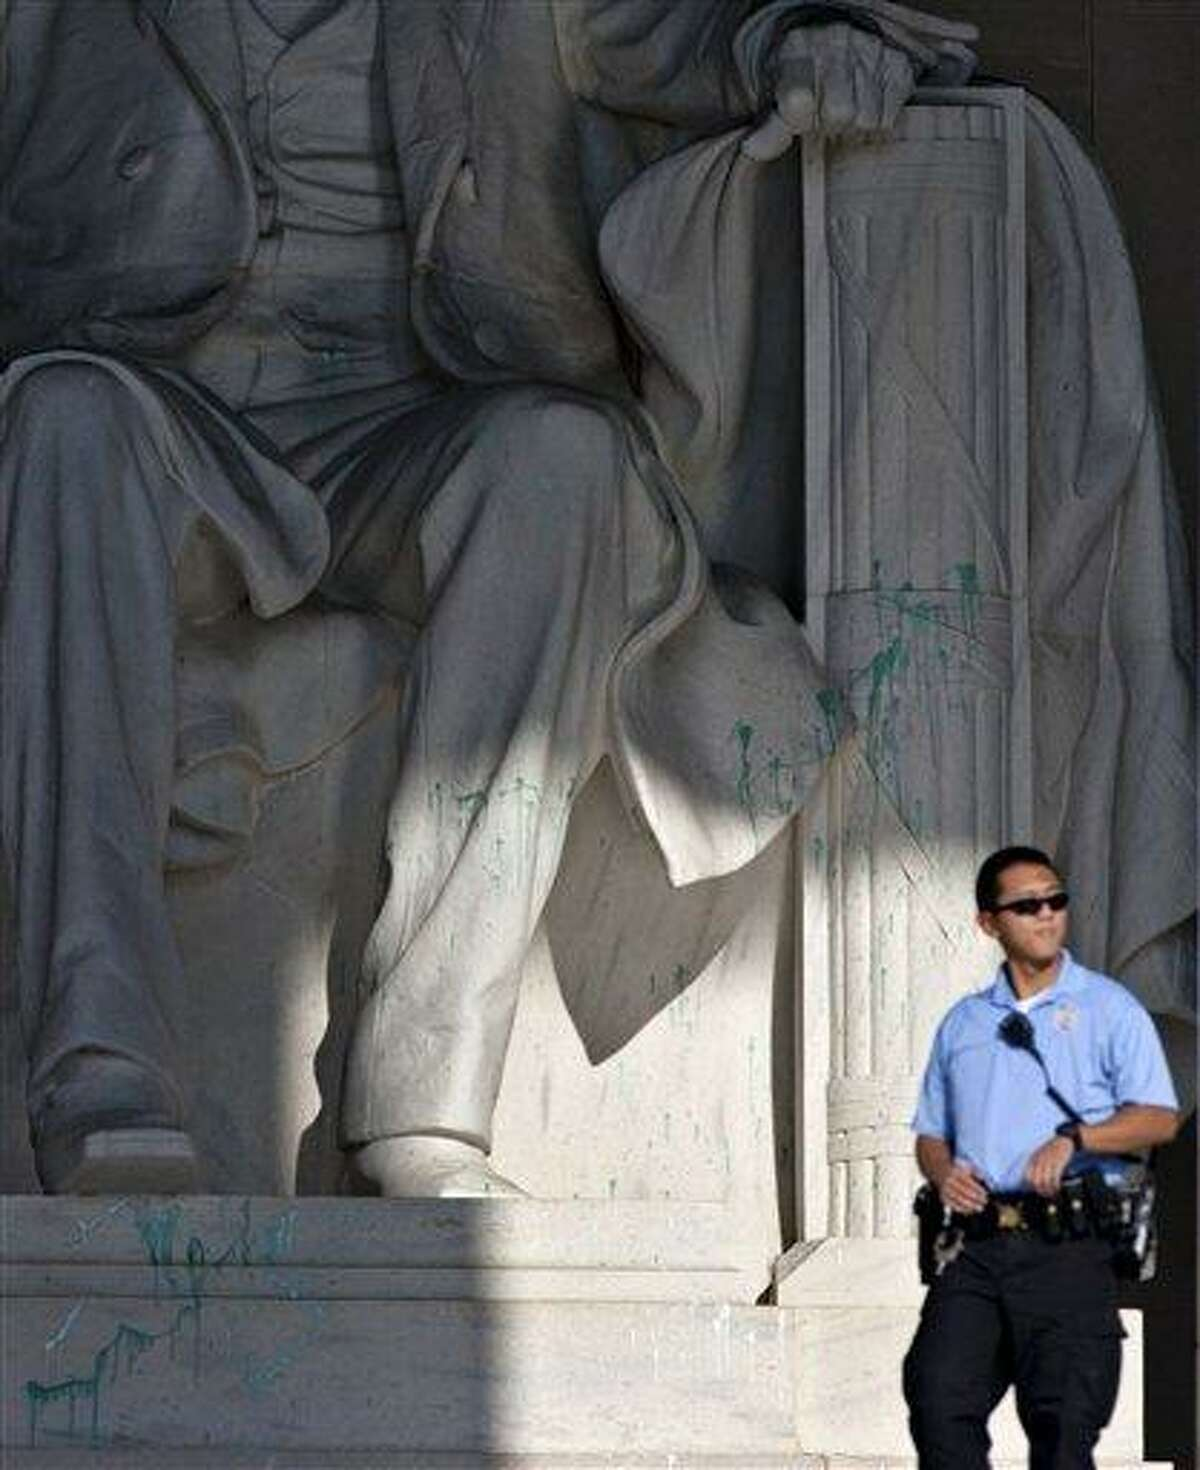 A U.S. Park Police officer stands guard next to the statue of Abraham Lincoln at the memorial in Washington, Friday, July 26, 2013, after the memorial was closed to visitors after someone splattered green paint on the statue and the floor area. Police say the apparent vandalism was discovered early Friday morning. No words, letters or symbols were visible in the paint. (AP Photo/J. Scott Applewhite)